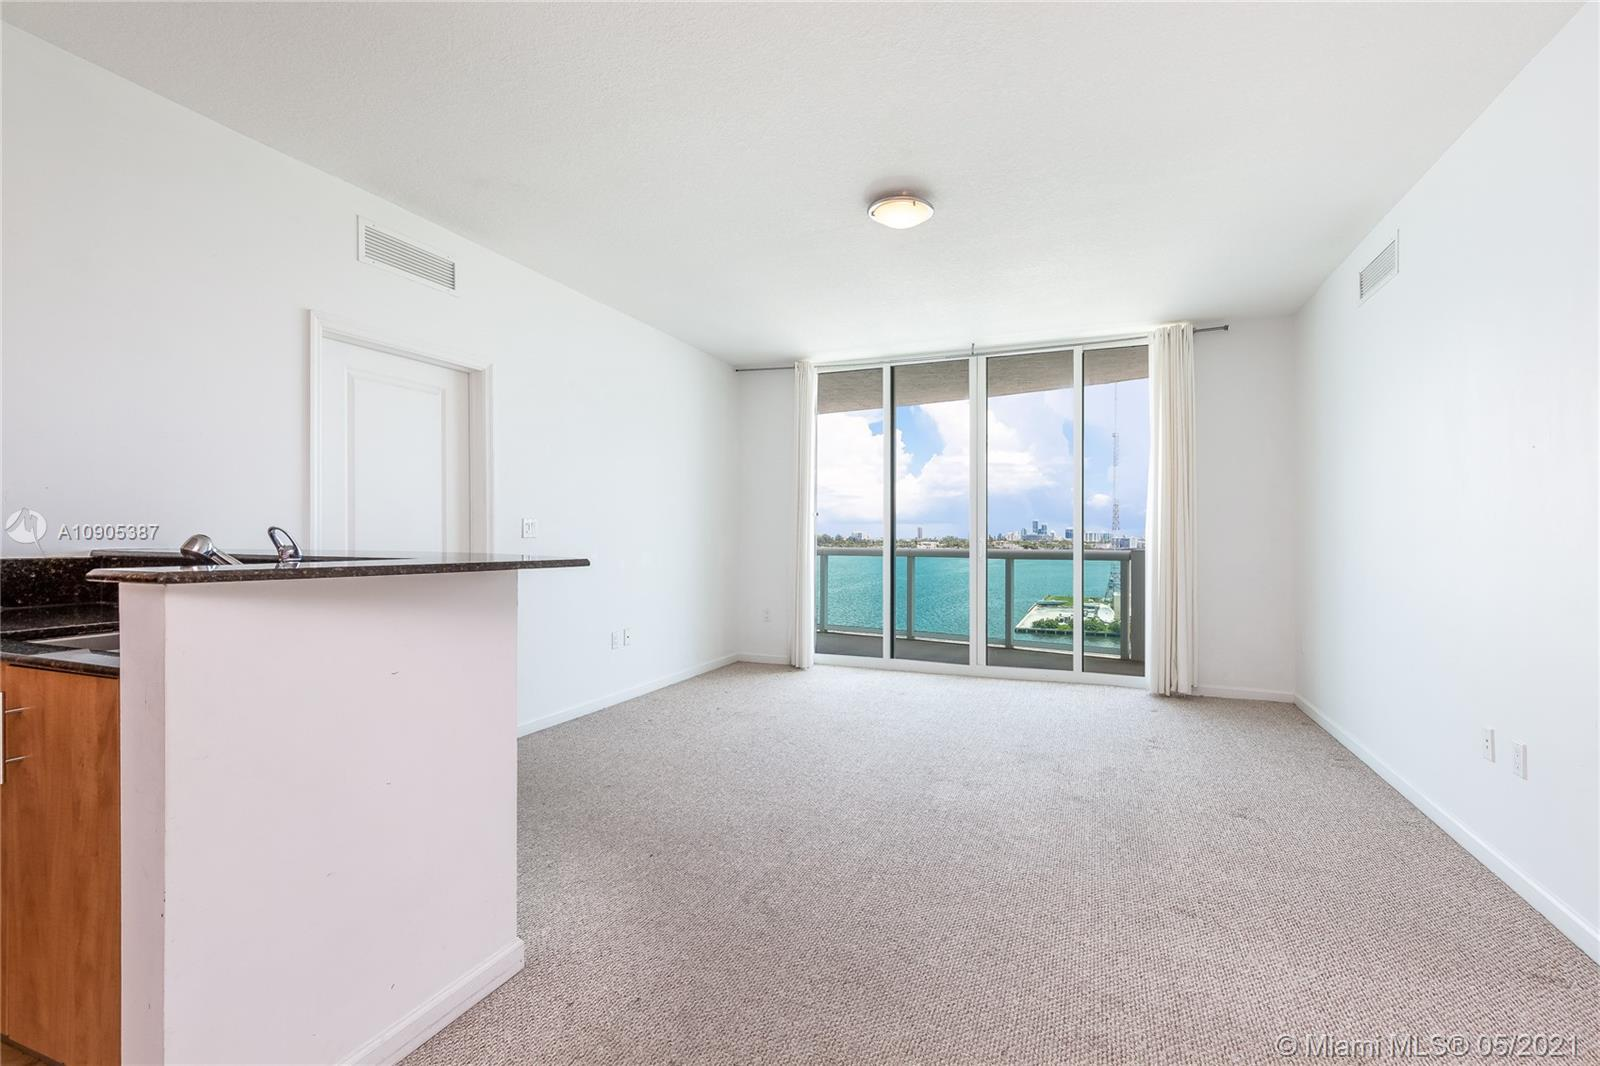 Spacious and bright 2/2 with split floor plan, overlooking Biscayne Bay with total privacy and direct water views from every room. Large balcony. Building offers gorgeous amenities, including 2 pools, fantastic gym, sauna, 24-hr security, FREE valet and guest parking. W/D in unit. MUST SEE!!